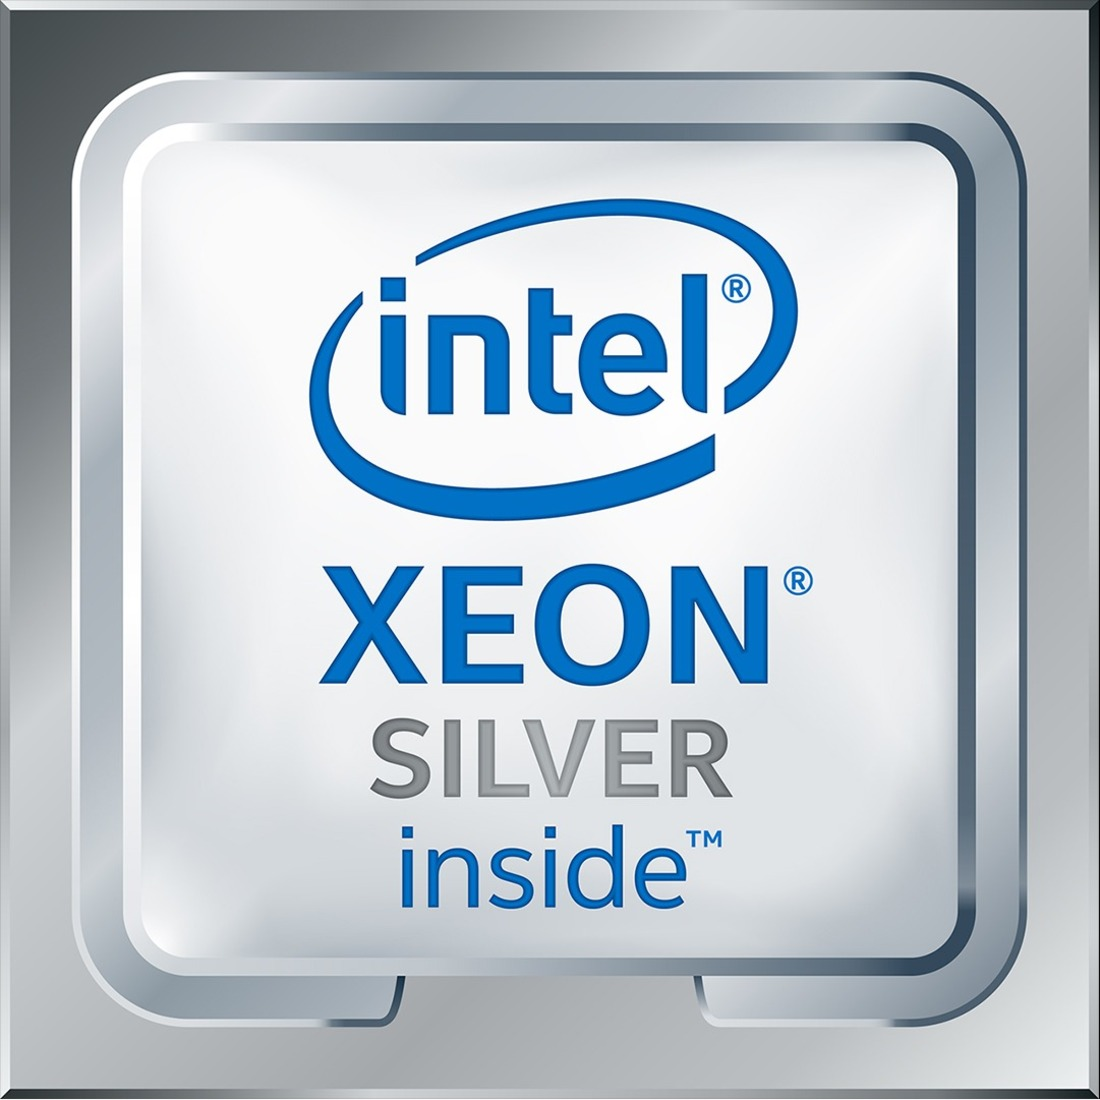 HPE DL380 Gen10 Intel Xeon-Silver 4208 (2.1GHz/8-core/85W) Processor Kit P02491-B21